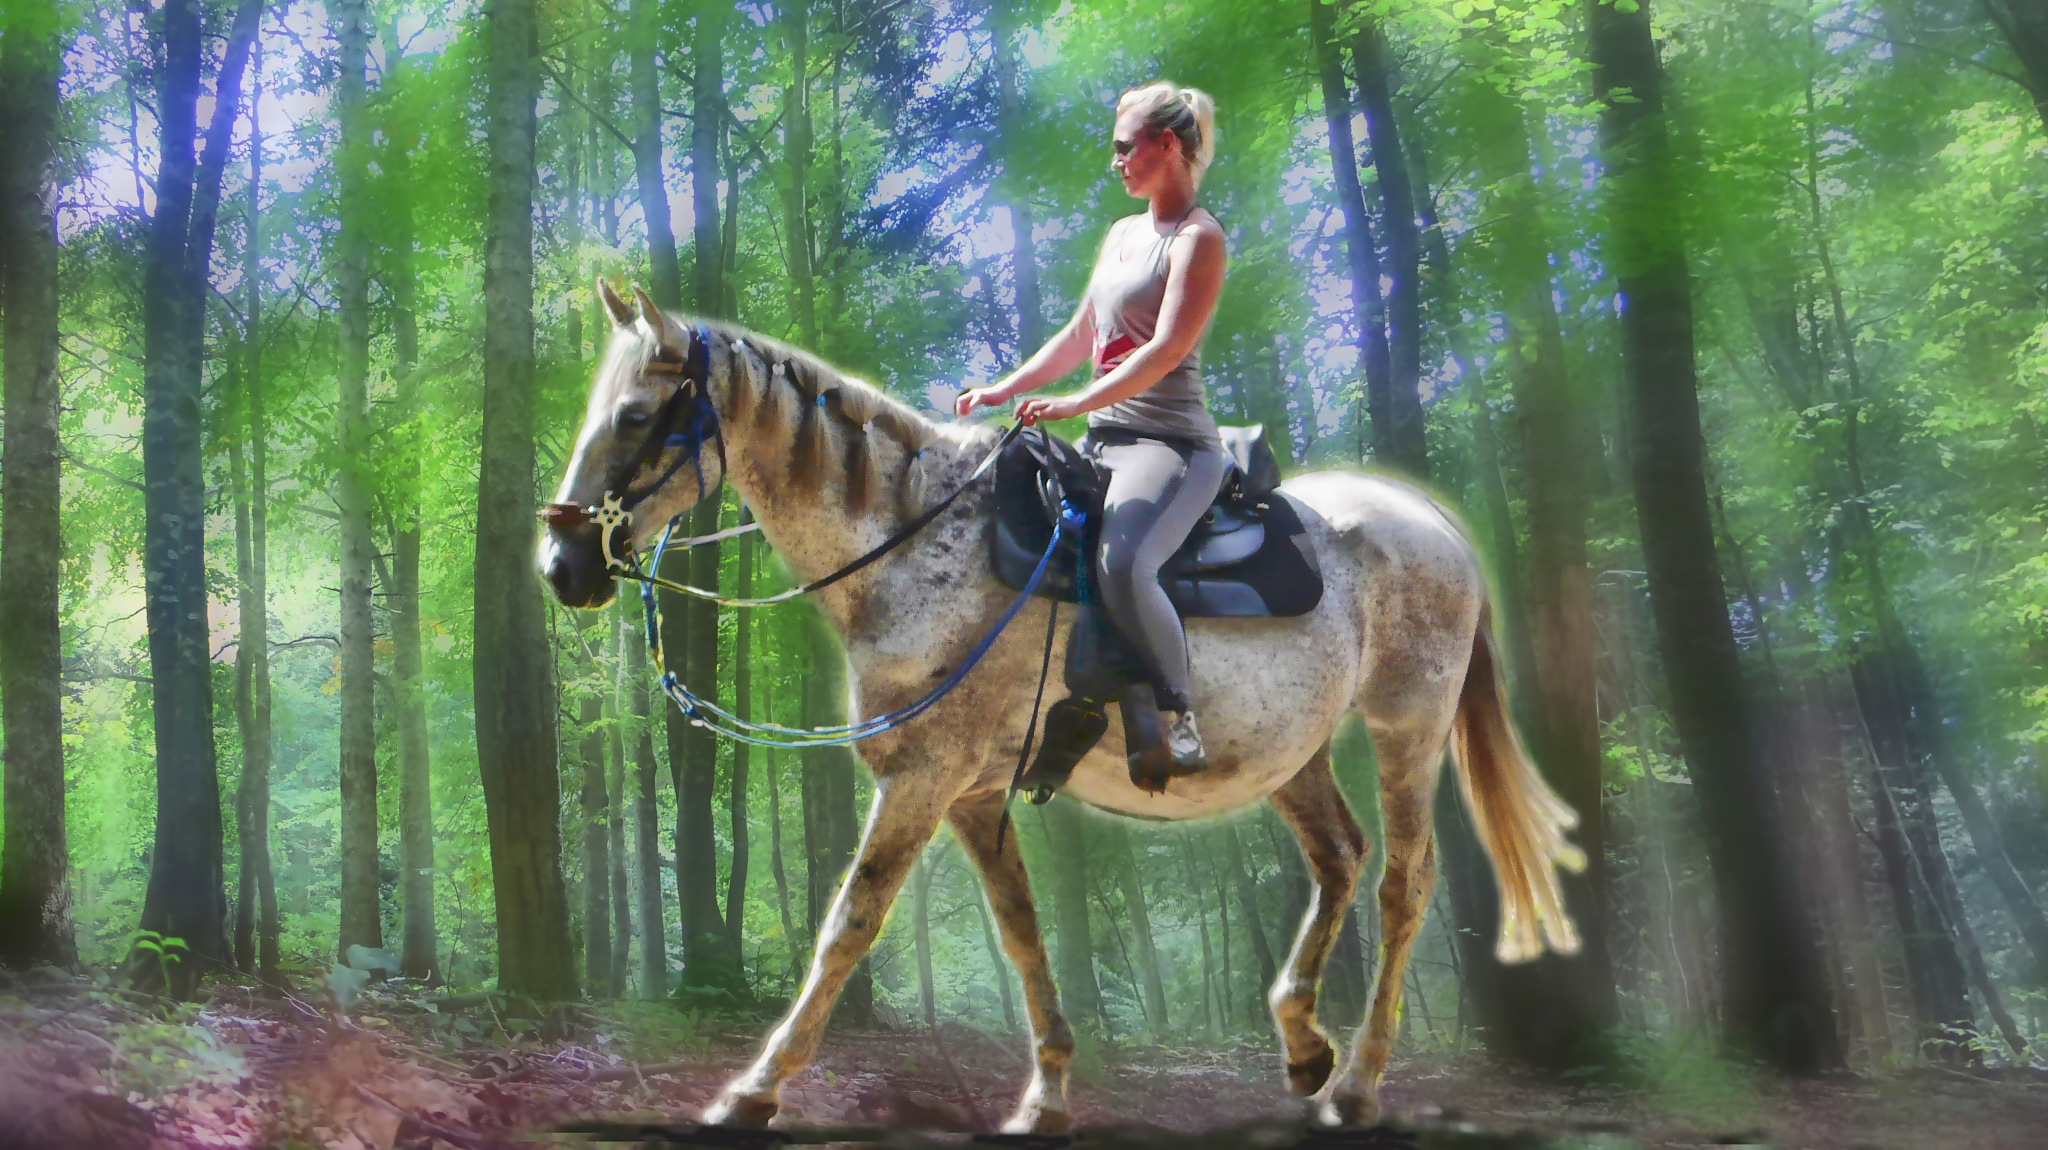 horsewoman in the forest by sunrisesunset